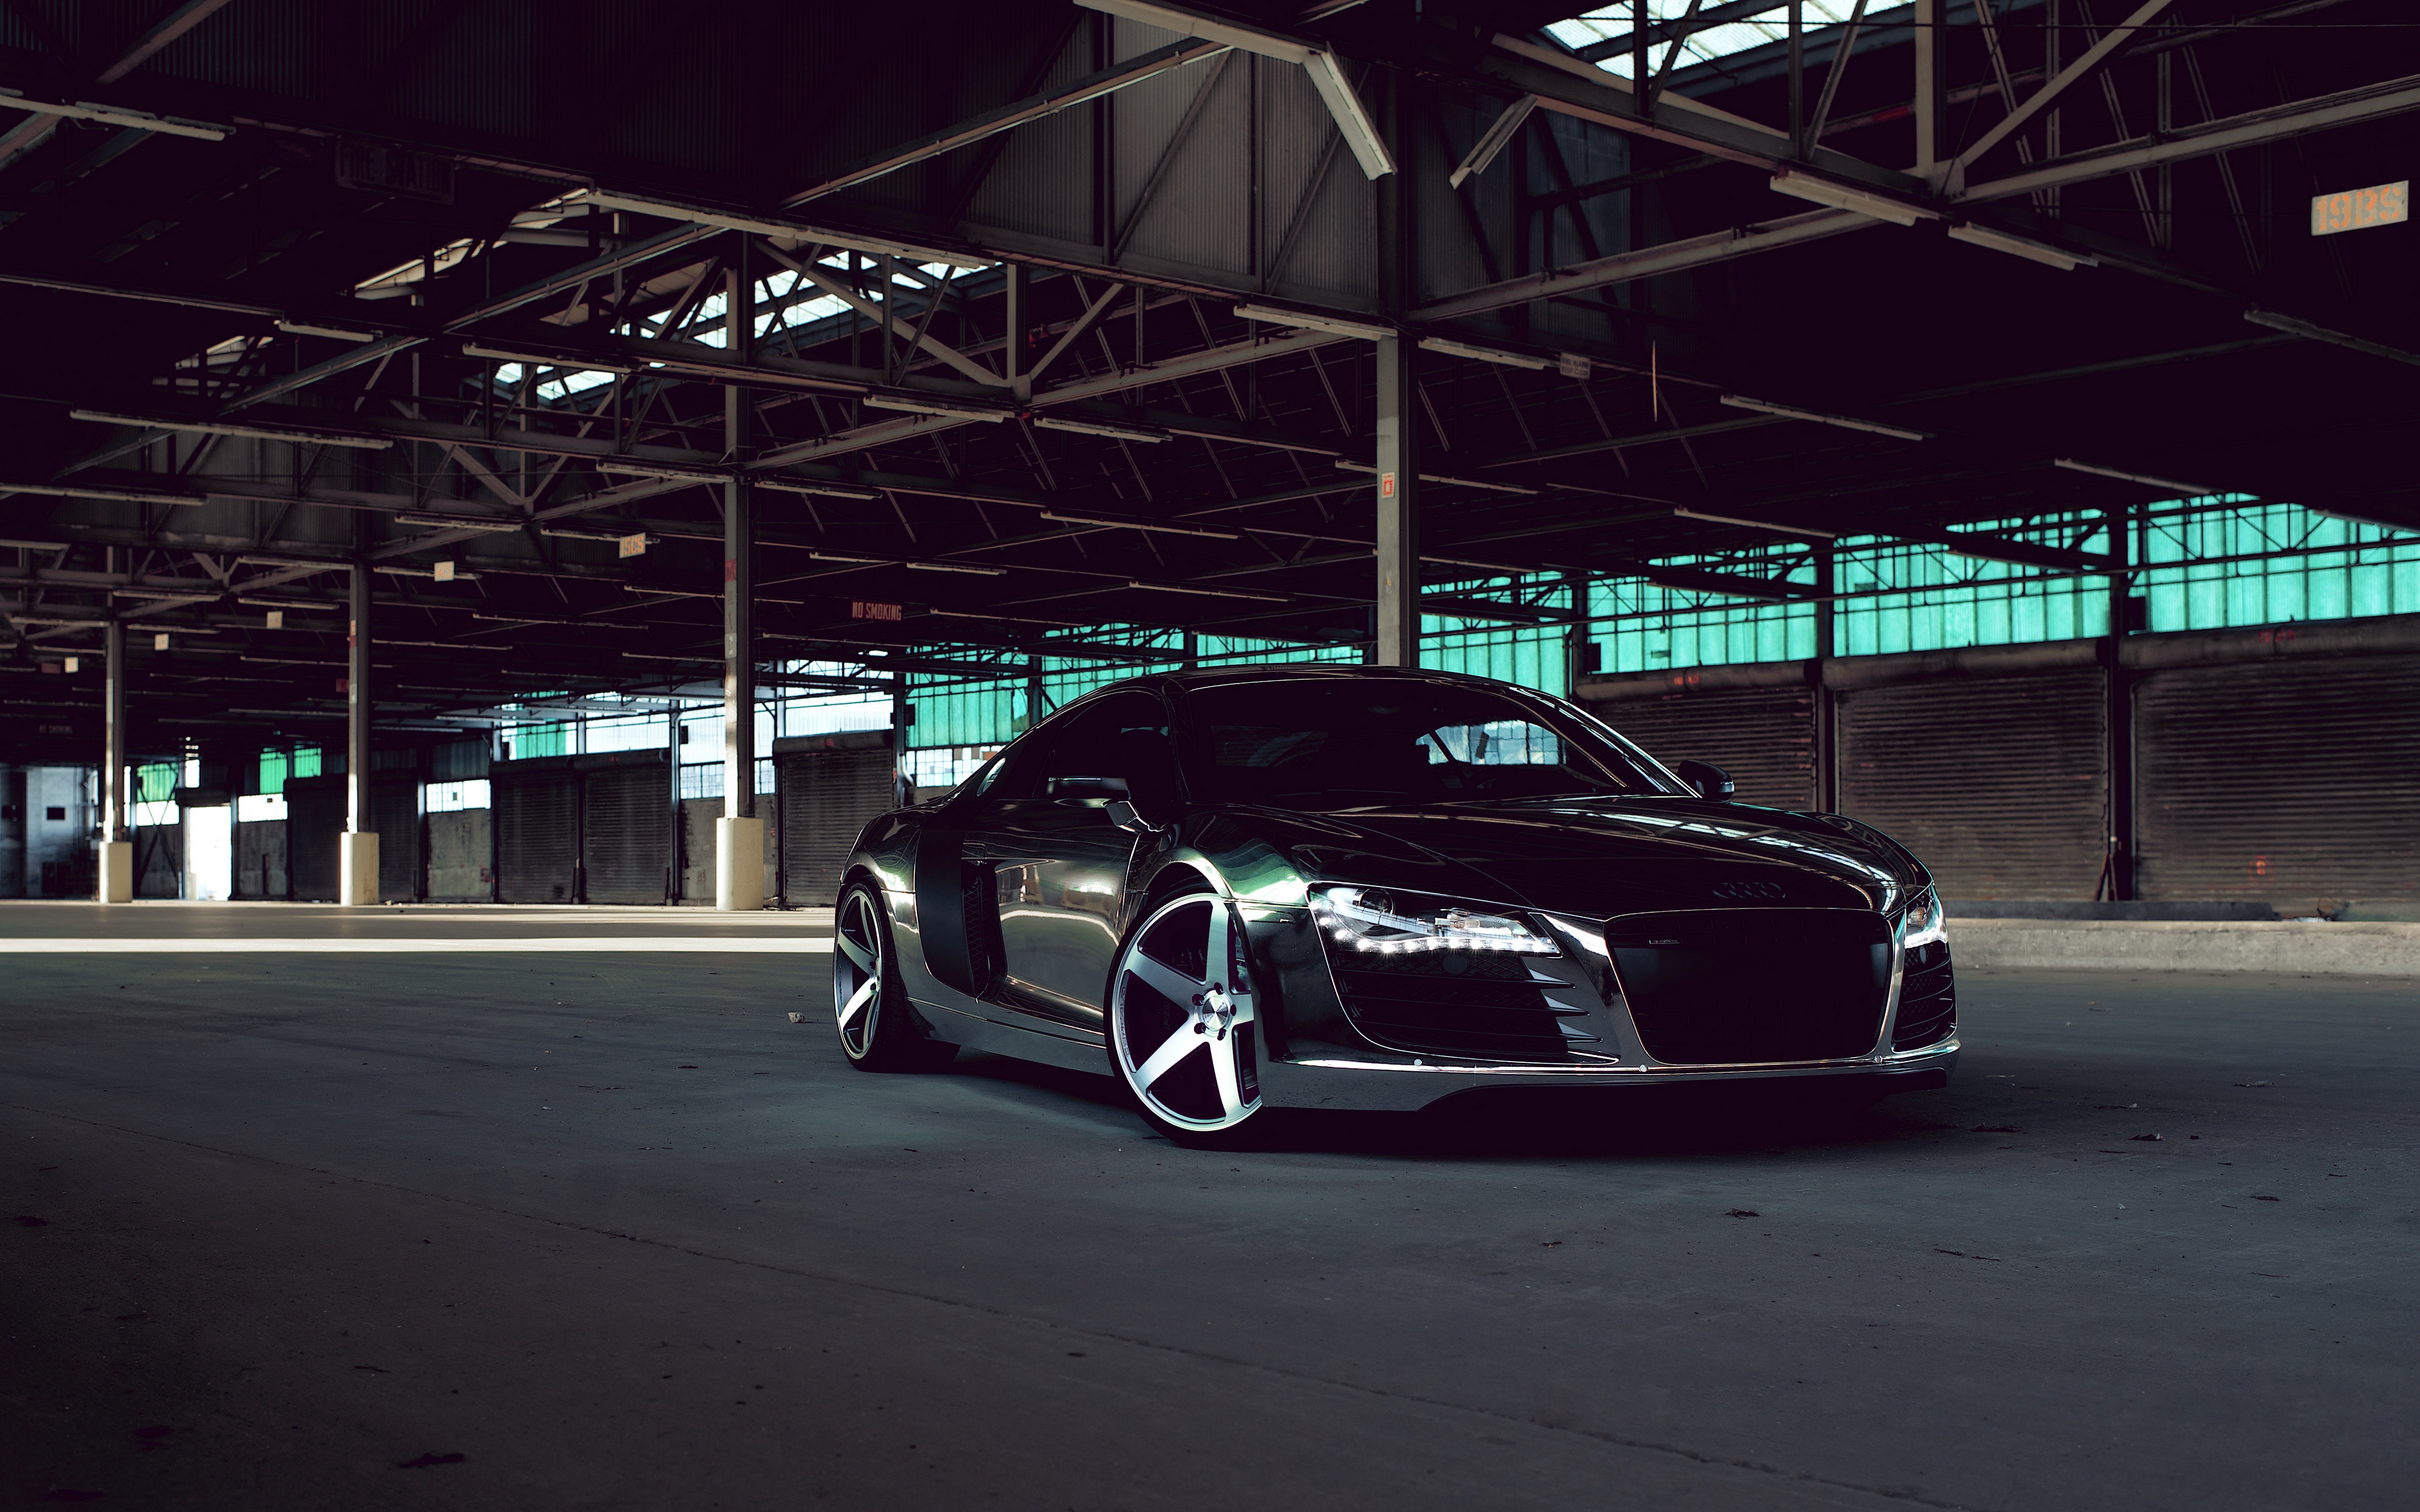 audi r8 chrome cw 5 matte black black side 3840×2400